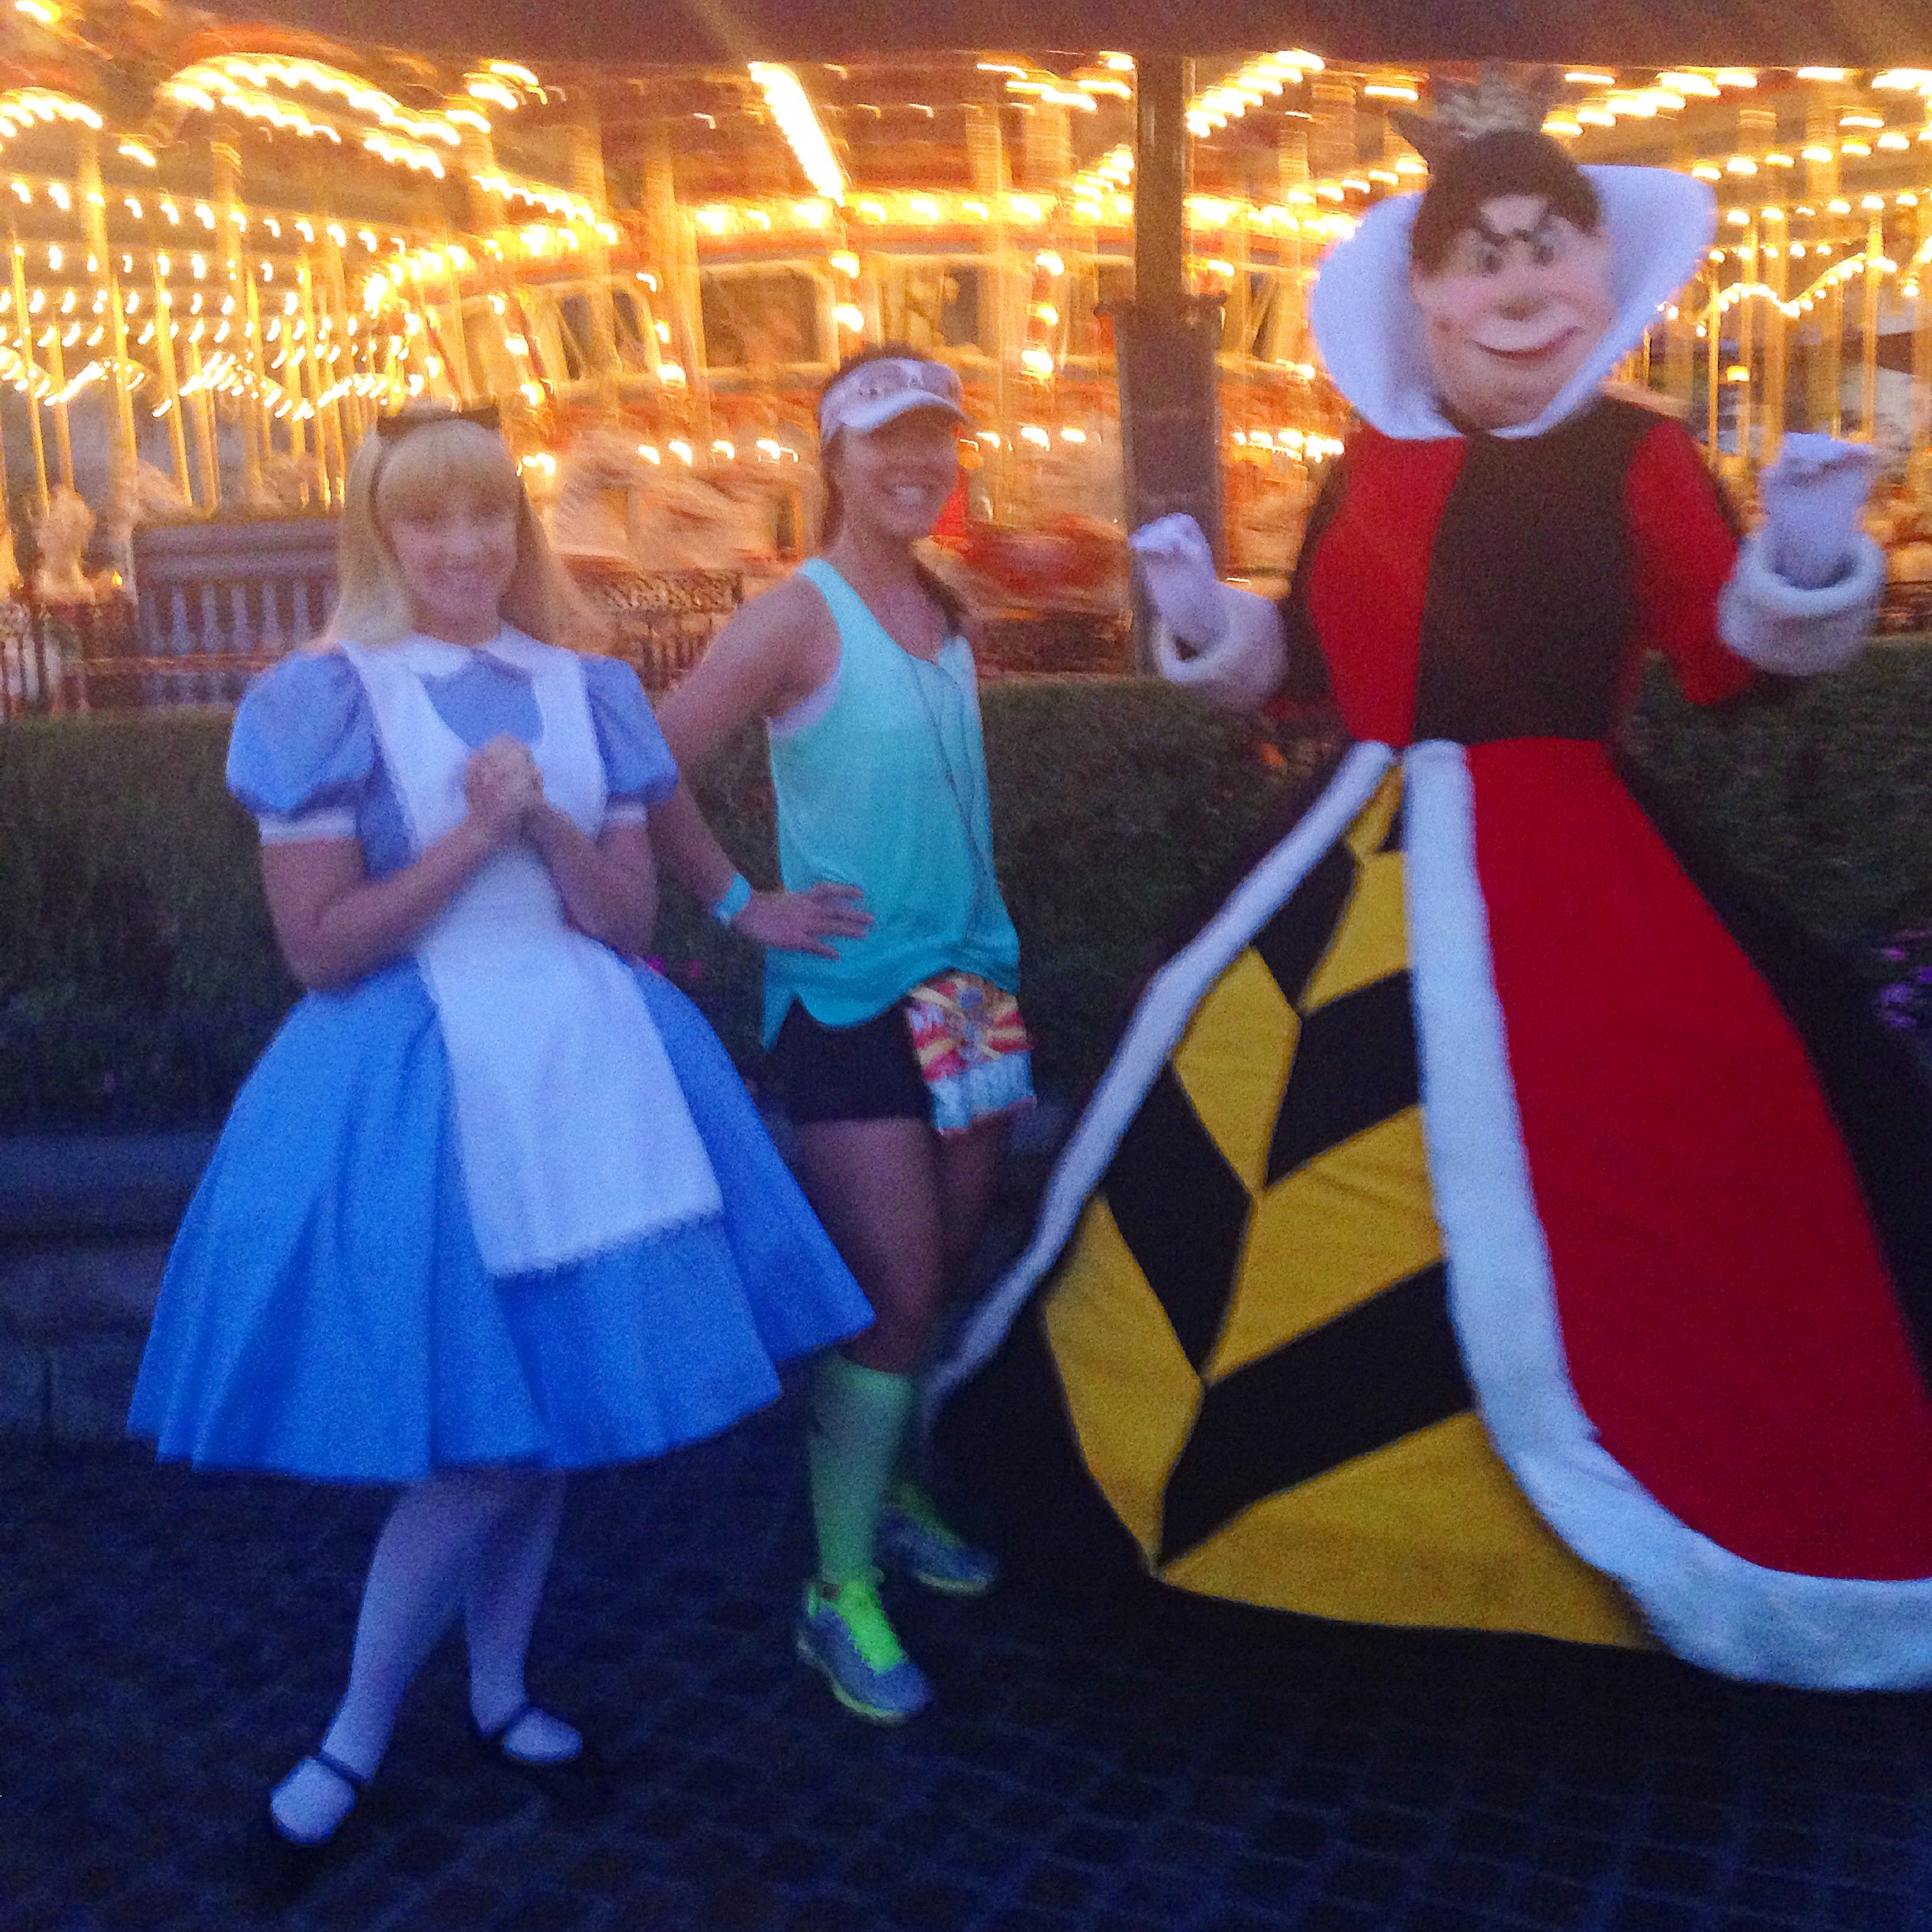 Alice in Wonderland and the Queen of Hearts during the 2015 Disneyland Half Marathon